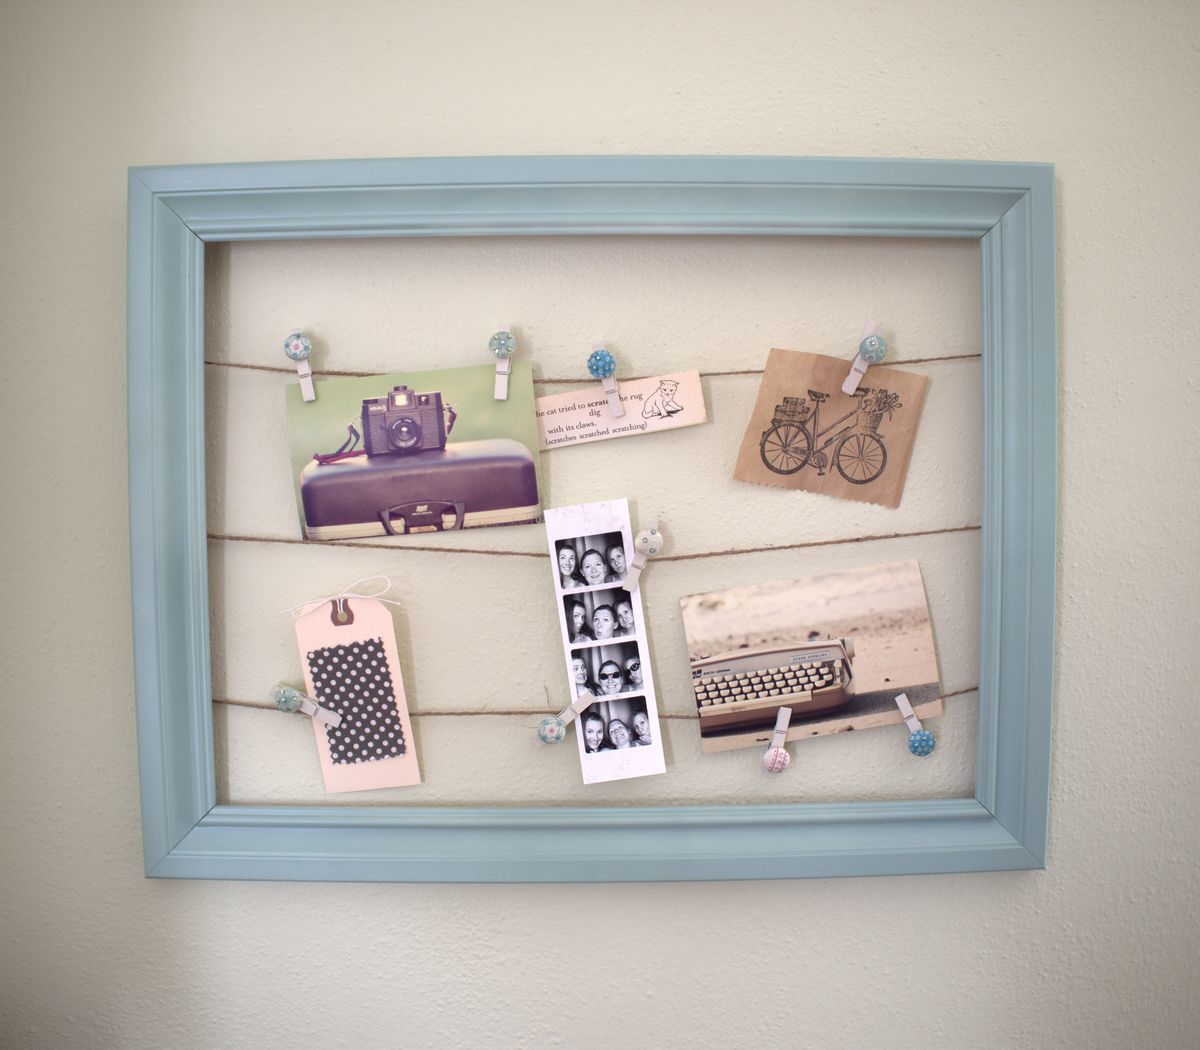 Diy inspiration frame leona lane this is a really easy and fun little do it yourself project you can personalize it to match your decor really easily plus you can change things out as jeuxipadfo Image collections